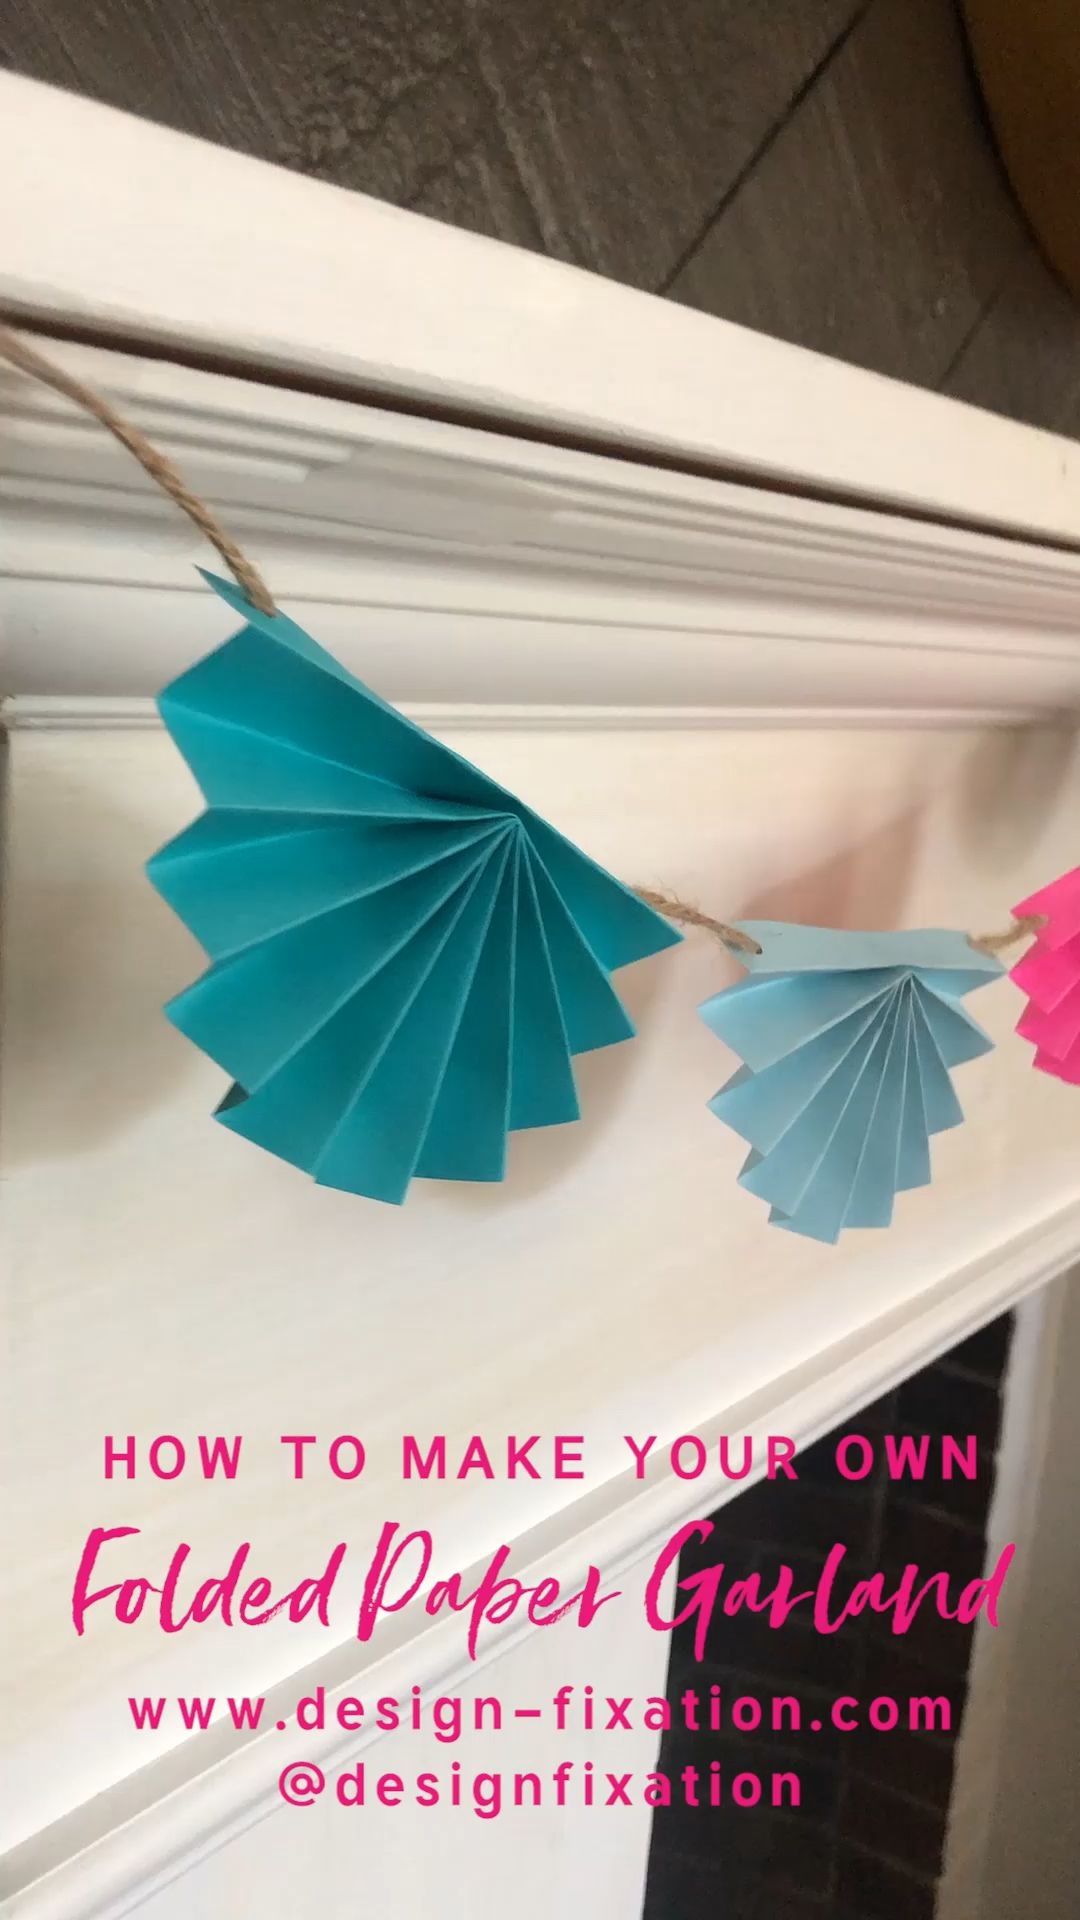 Easy Diy Folded Paper Garland Video Event Decorations Diy Diy Party Decorations Paper Crafts Diy